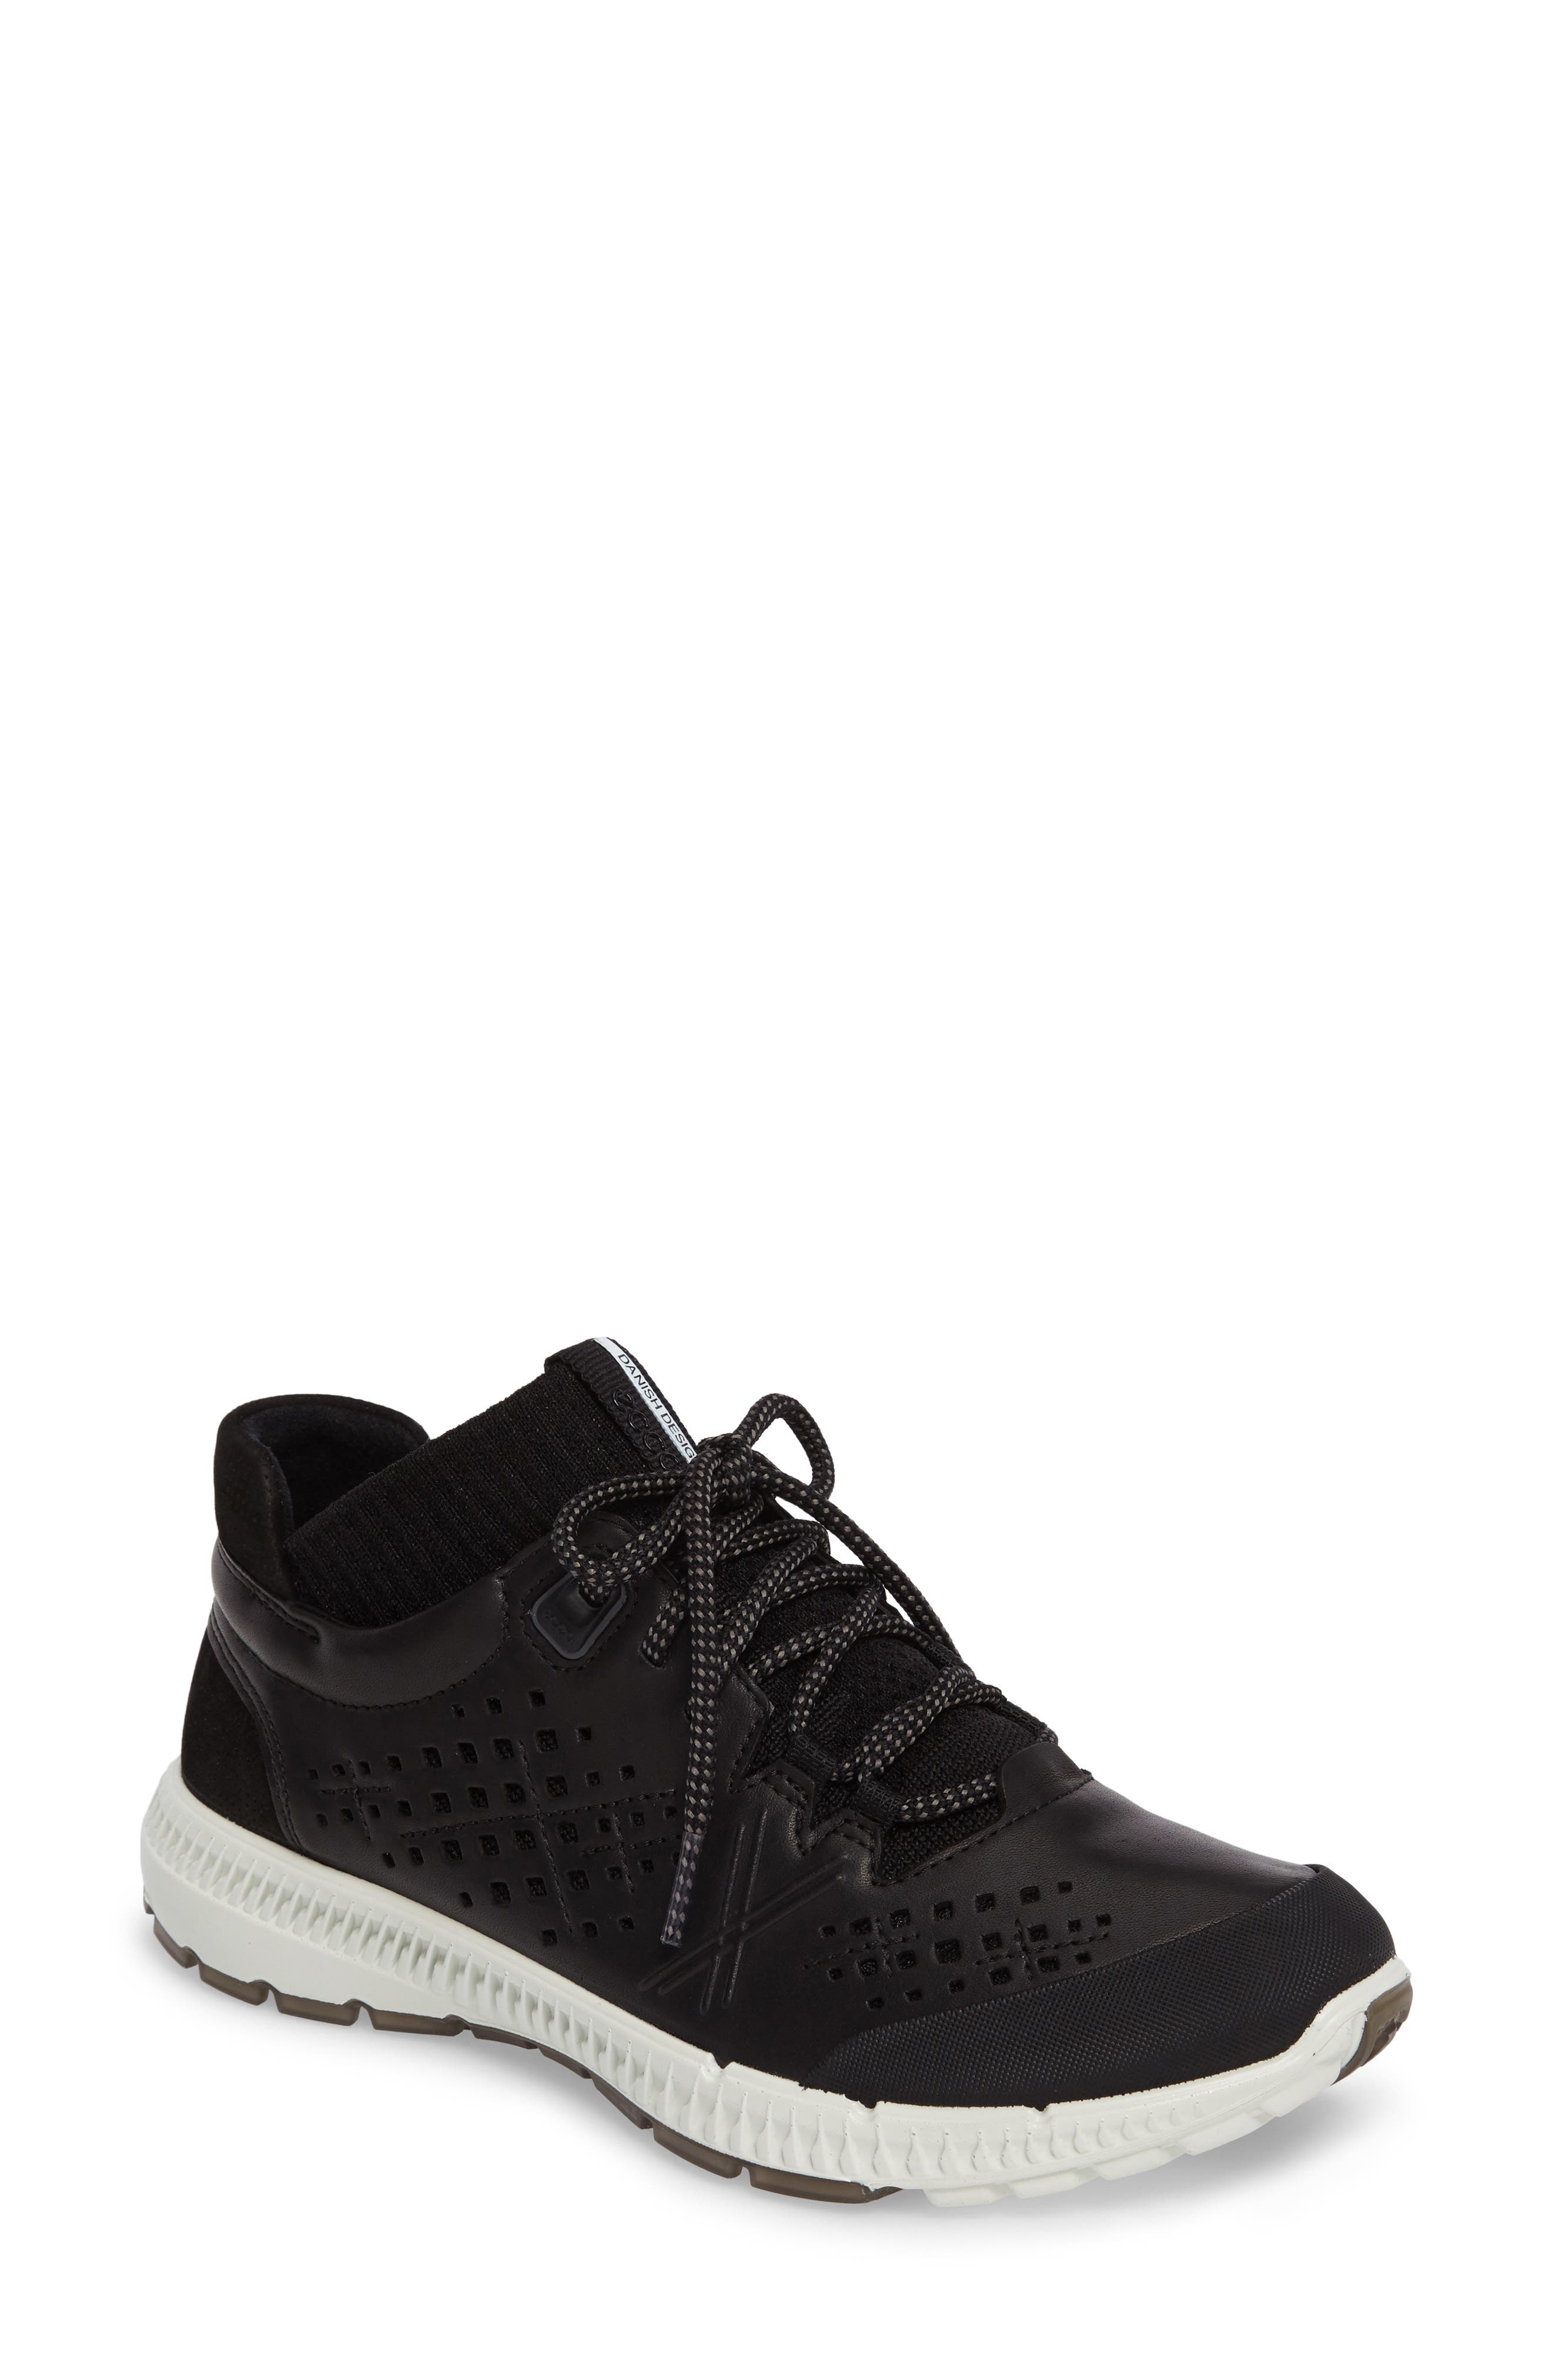 Intrinsic TR Sneaker,                         Main,                         color, Black Leather